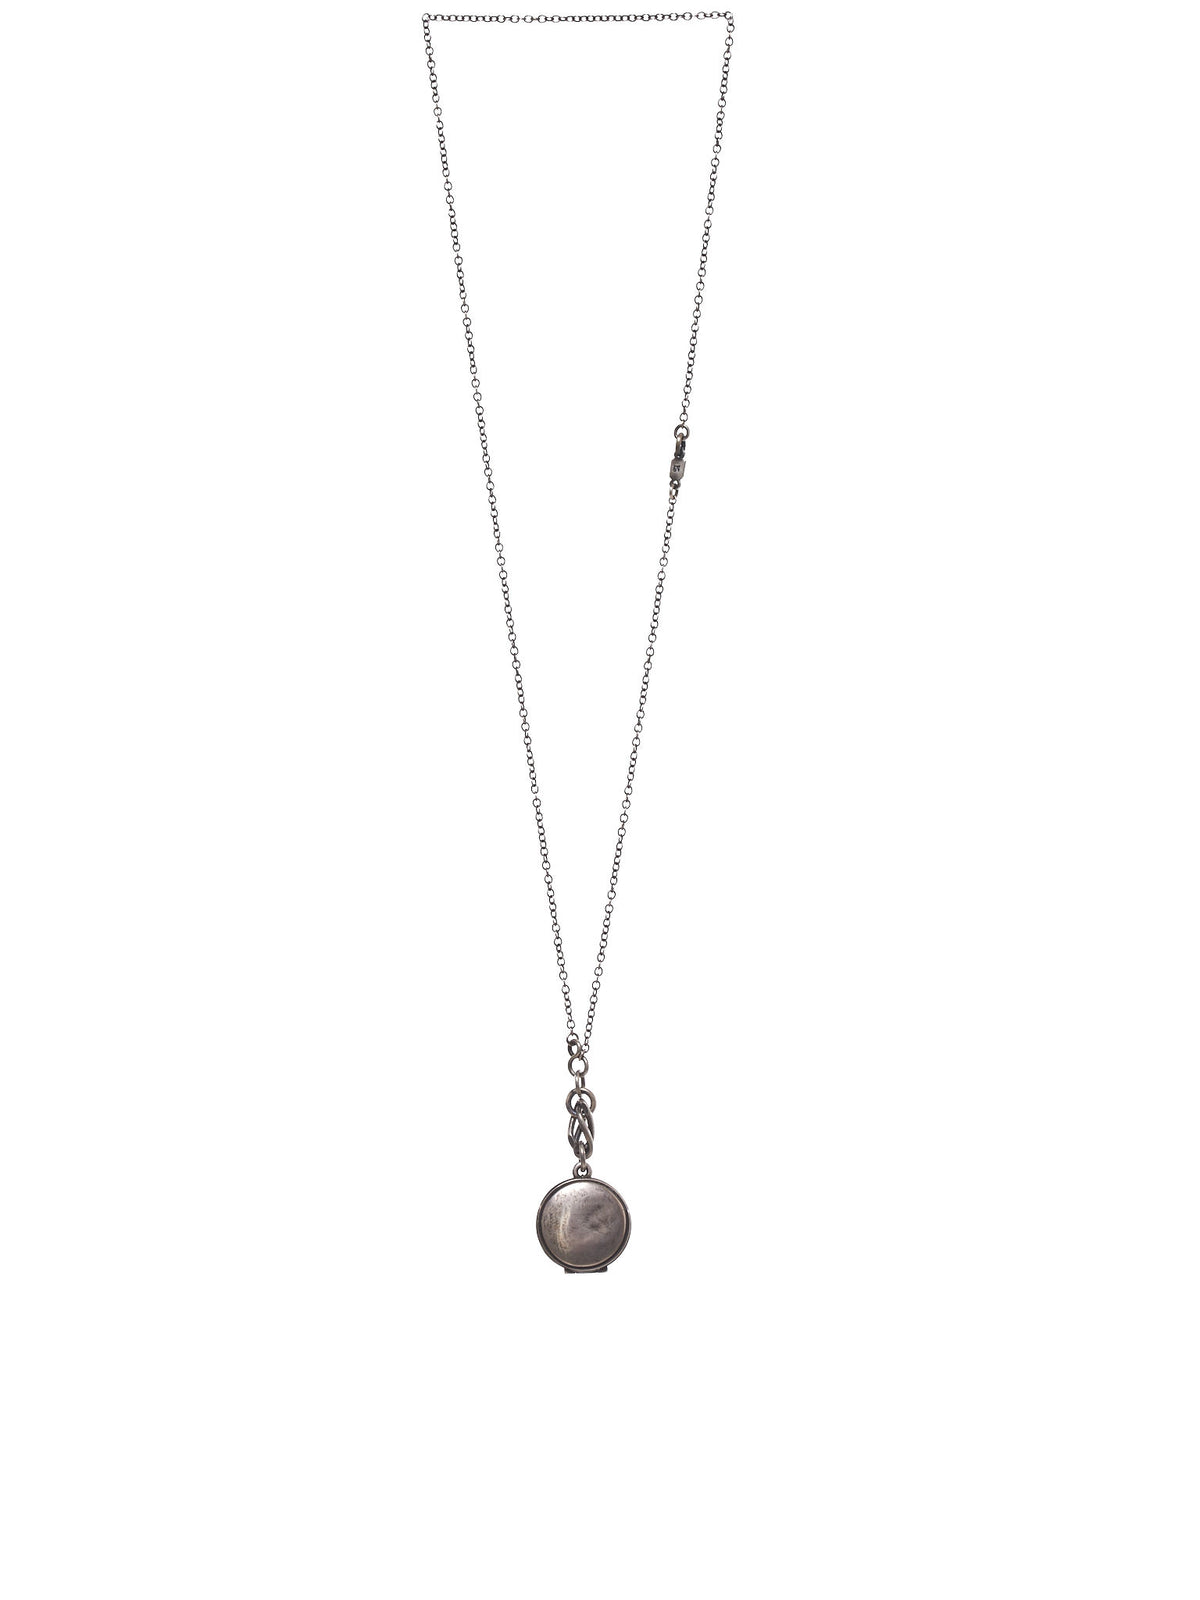 Medallion Necklace (M3841-NECKLACE-MEDALLION-SILVE)